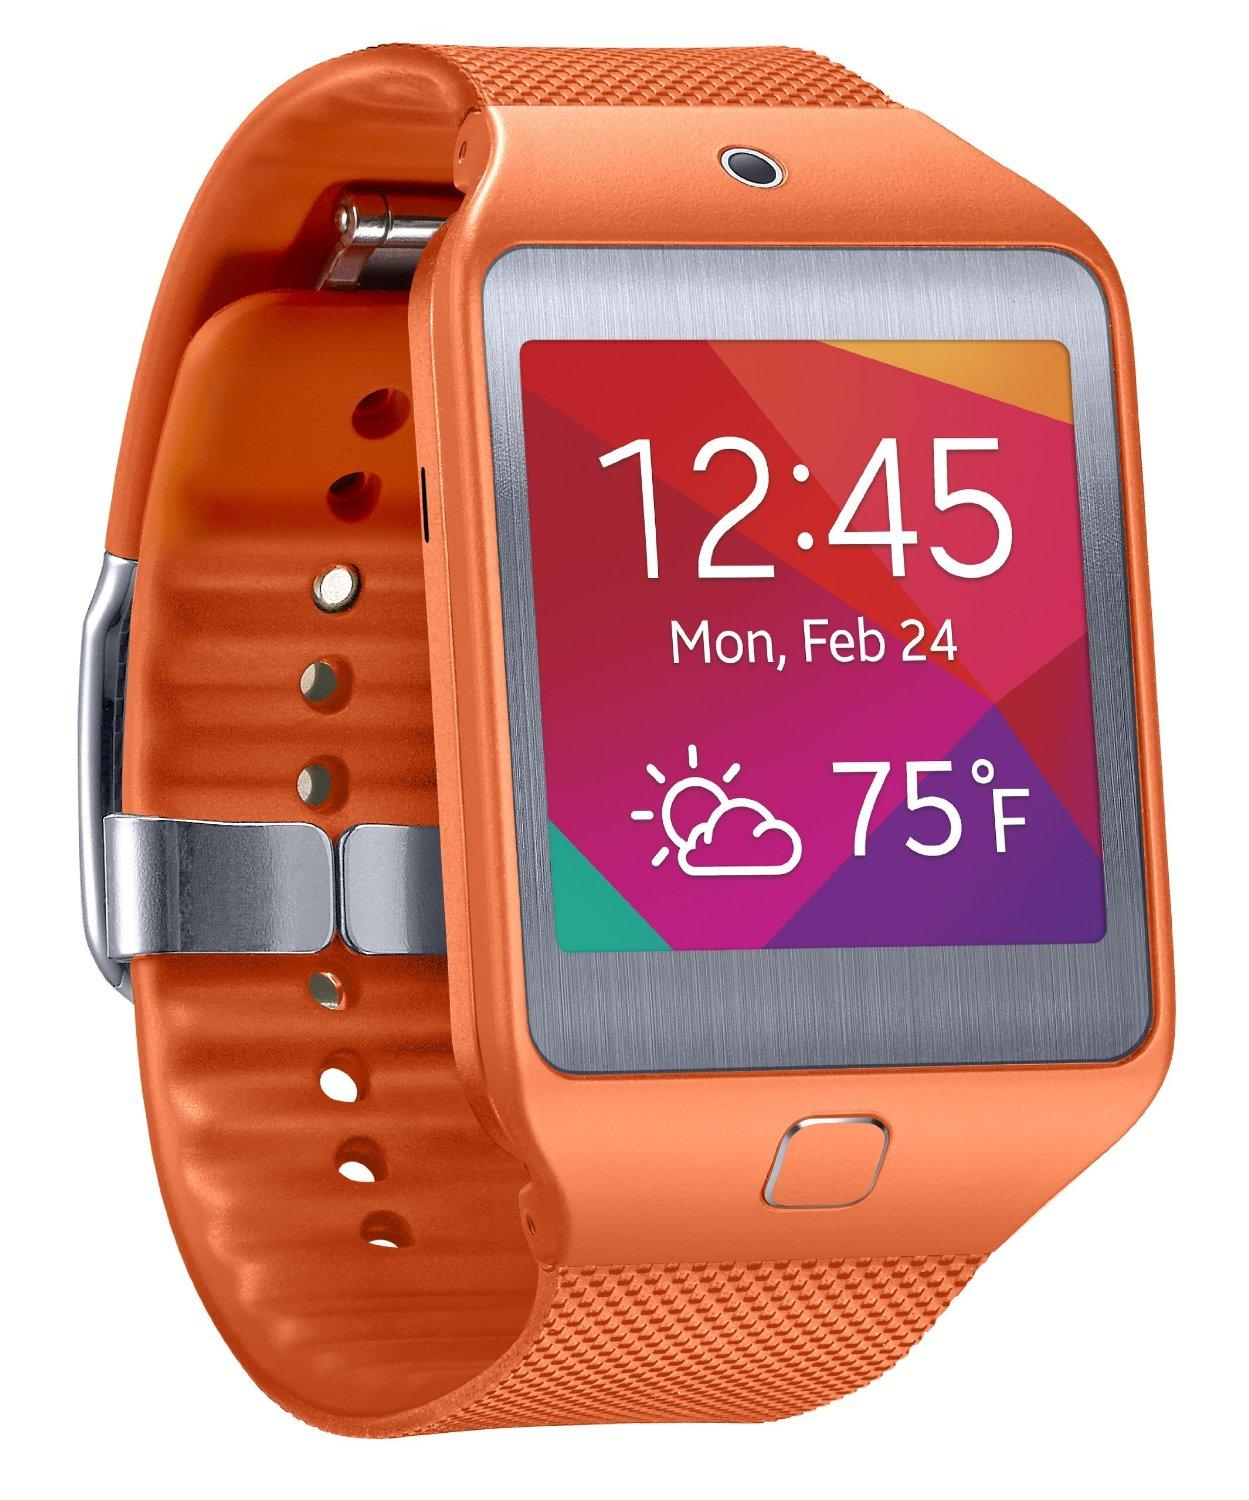 $133 Samsung Gear 2 Neo Smartwatch - Orange (US Warranty)